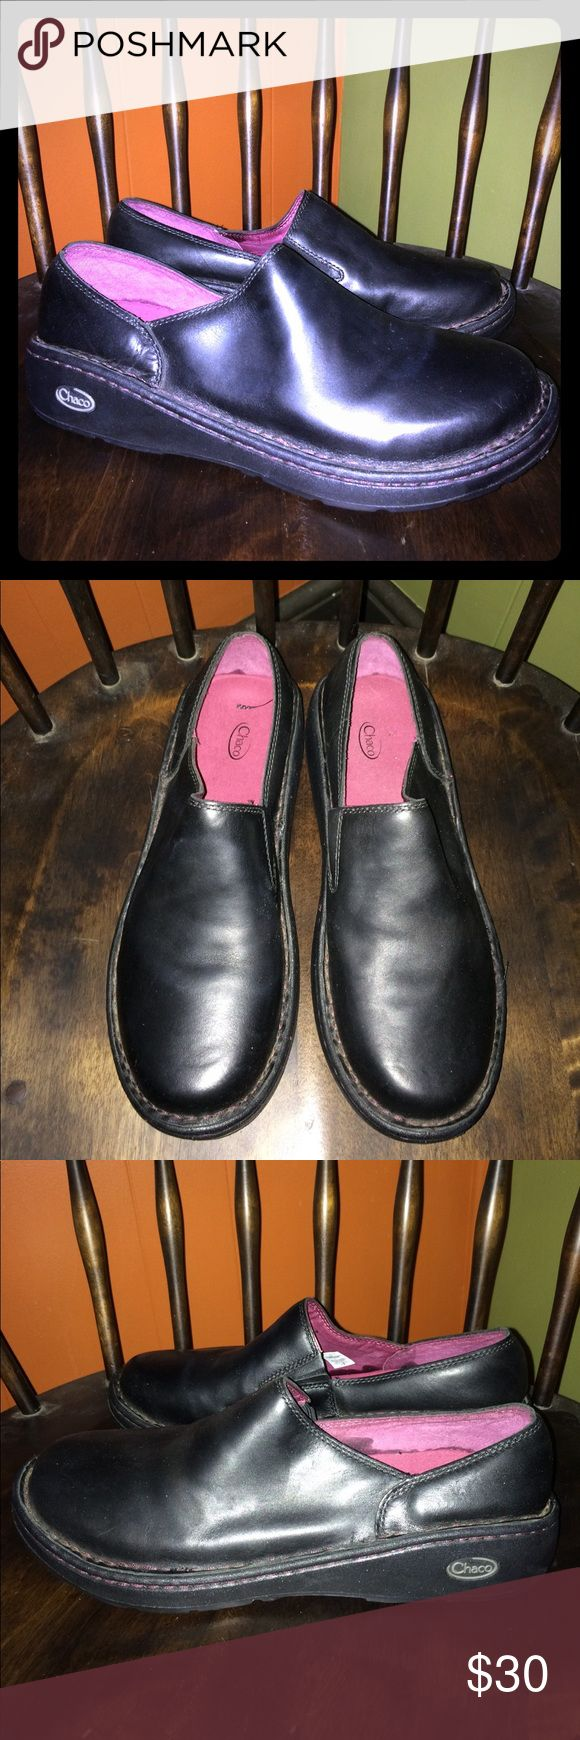 Chaco Zaagh Gunnison Clog Black Leather Women's 11 Chaco Zaagh Black Leather Gunnison Clogs. Women's Size 11. Great Condition, Lots Of Wear Left. Mild Scuffs From Use. Gently Pre Owned. Questions Welcome Thanks For Looking. Chaco Shoes Mules & Clogs